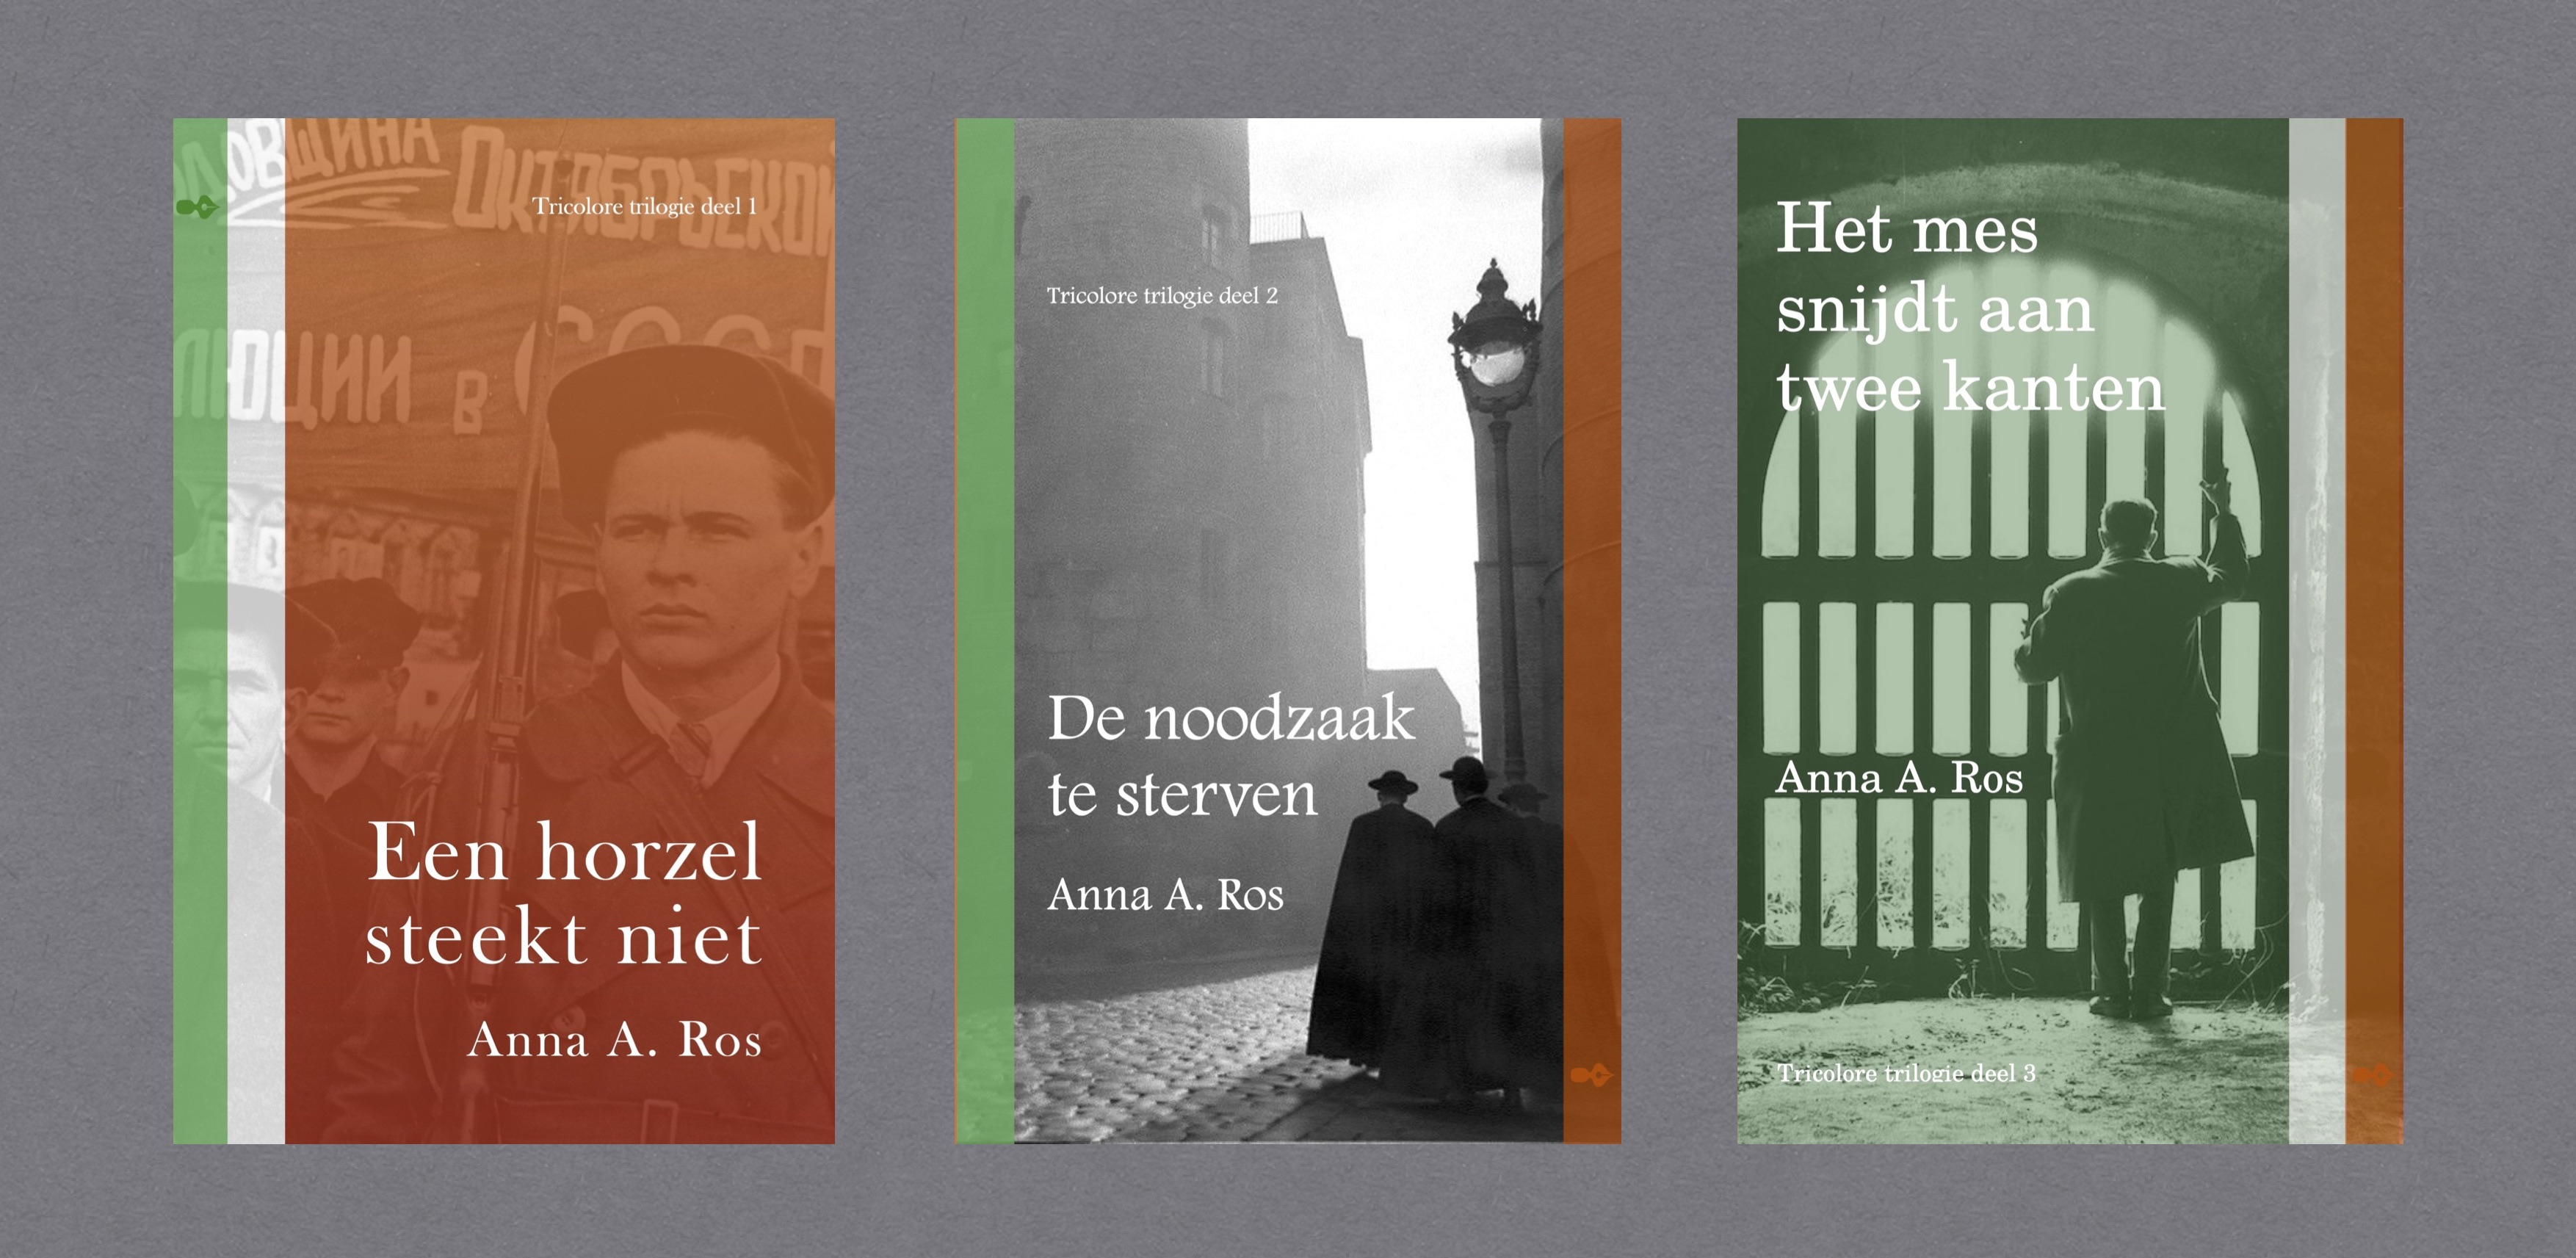 Over de trilogie